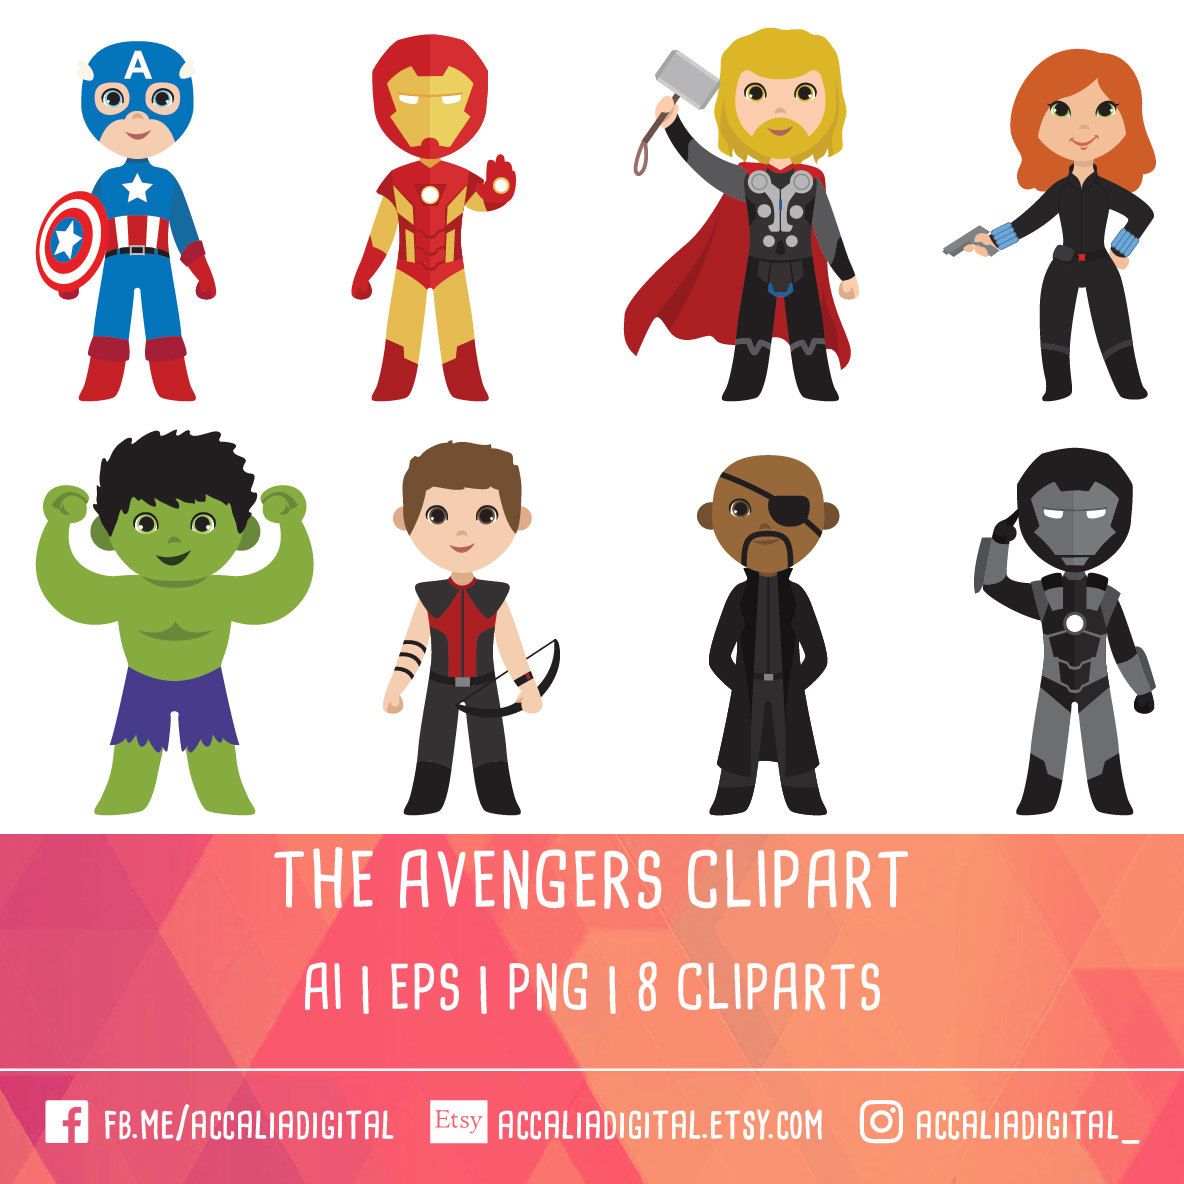 Flash clipart avenger Avengers 20% Hero Etsy Superhero